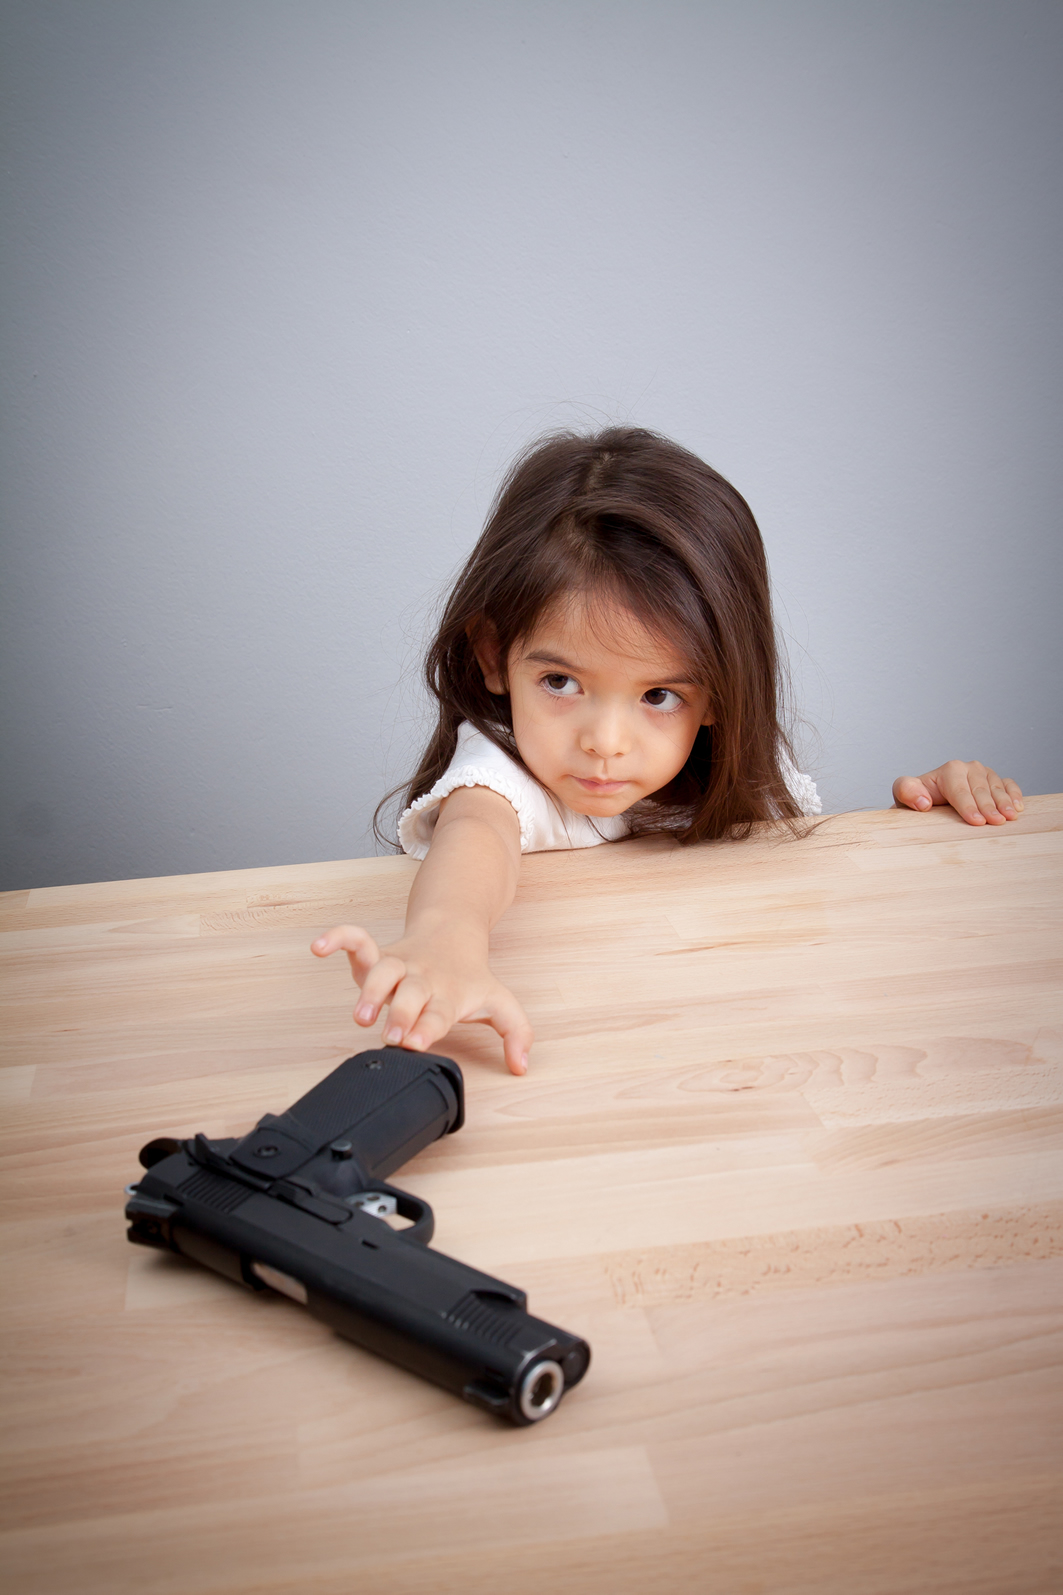 gun accidents in the home A year of unintentional child gun deaths june 2014 innocents lost 2 executive summary 4 background  unintentional gun deaths of children occur in the home, and that the highest numbers of unintentional child shootings take place in the late afternoon hours, when children are home from.